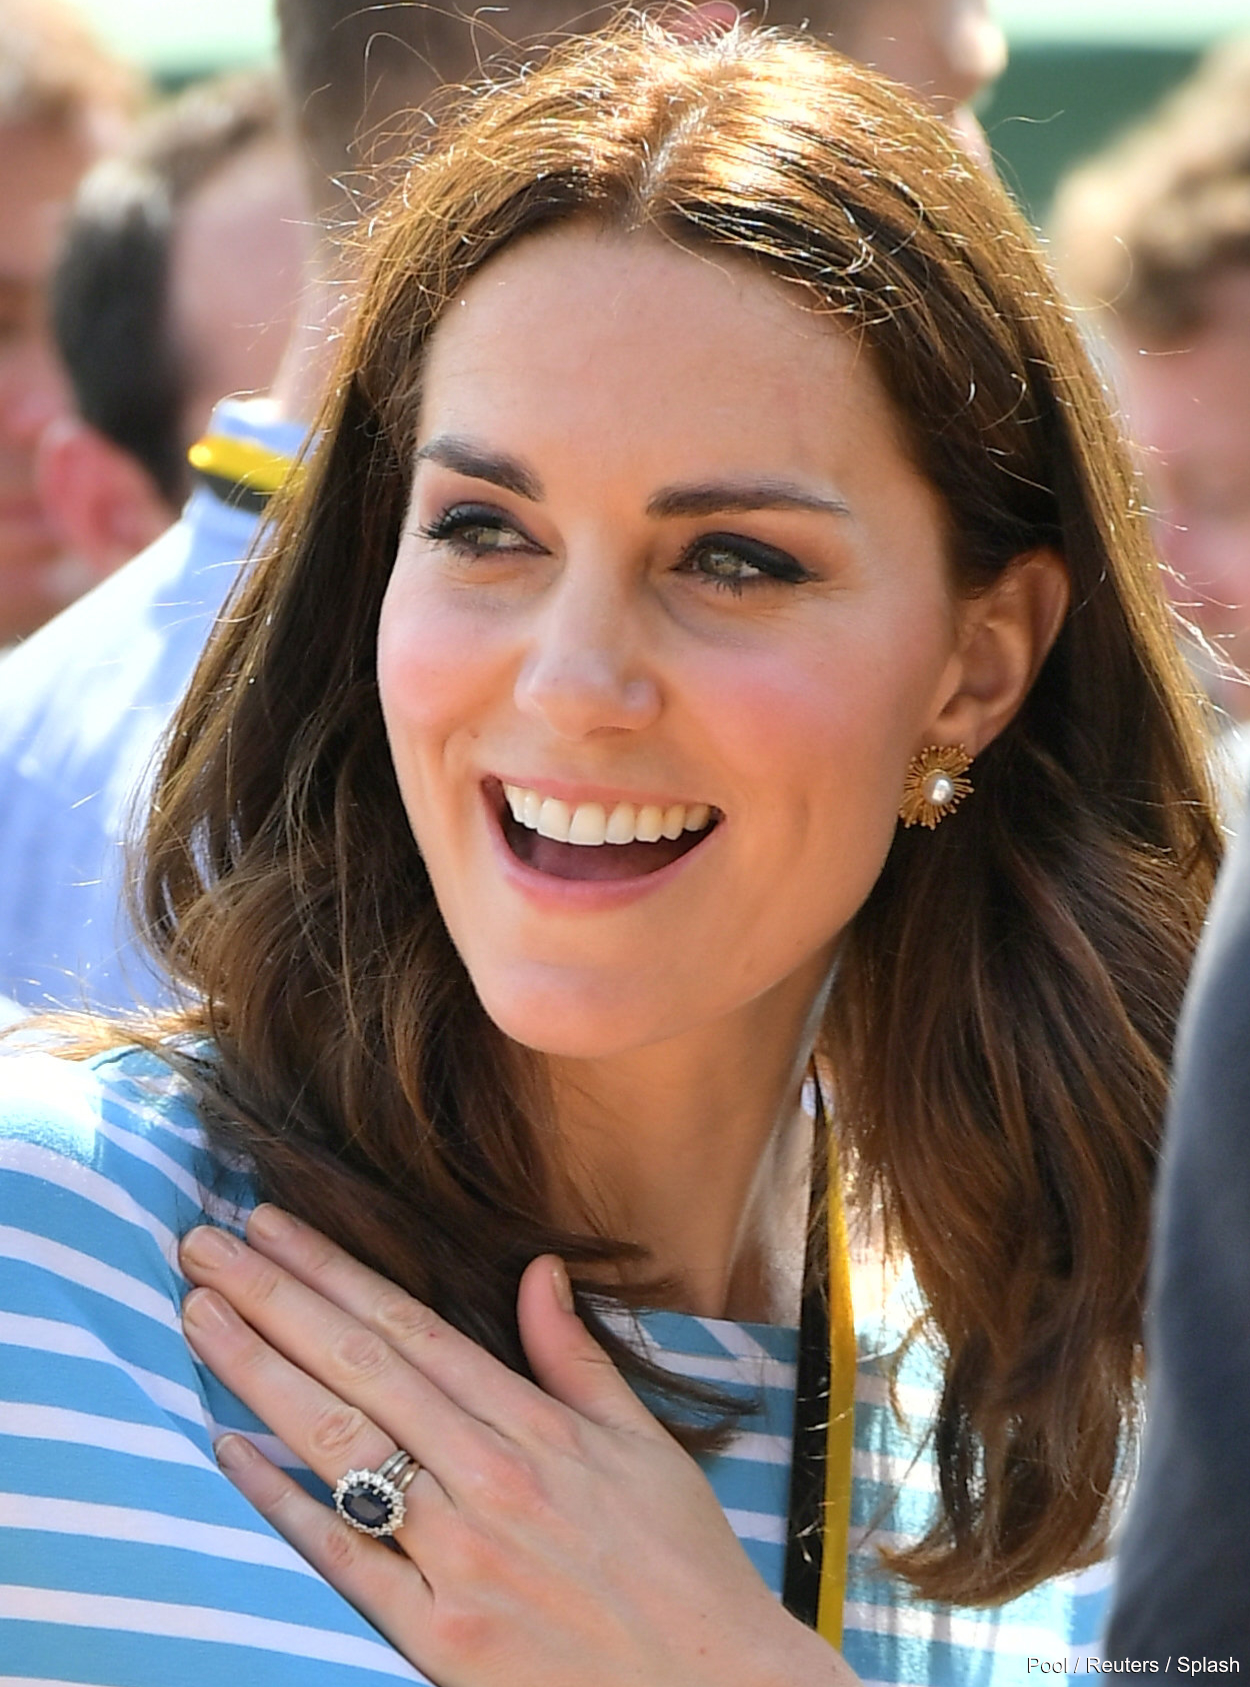 Duchess of Cambridge (Kate Middleton) wearing Oscar de la Renta earrings in Germany